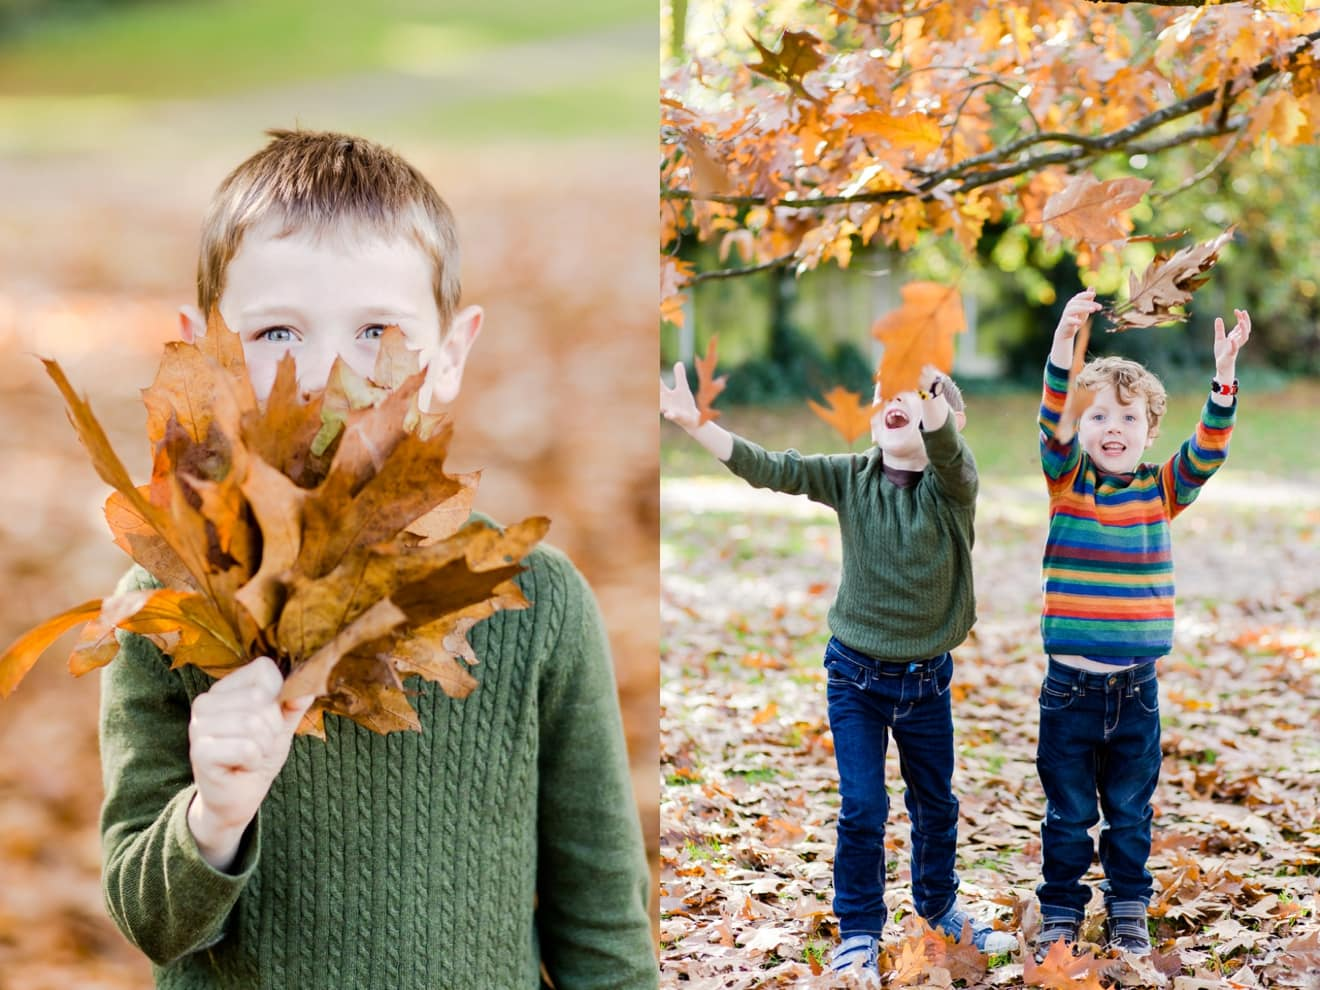 autumn-mini-portrait-sessions-surrey-weybridge-cobham-eddie-judd-family-photographer_0002